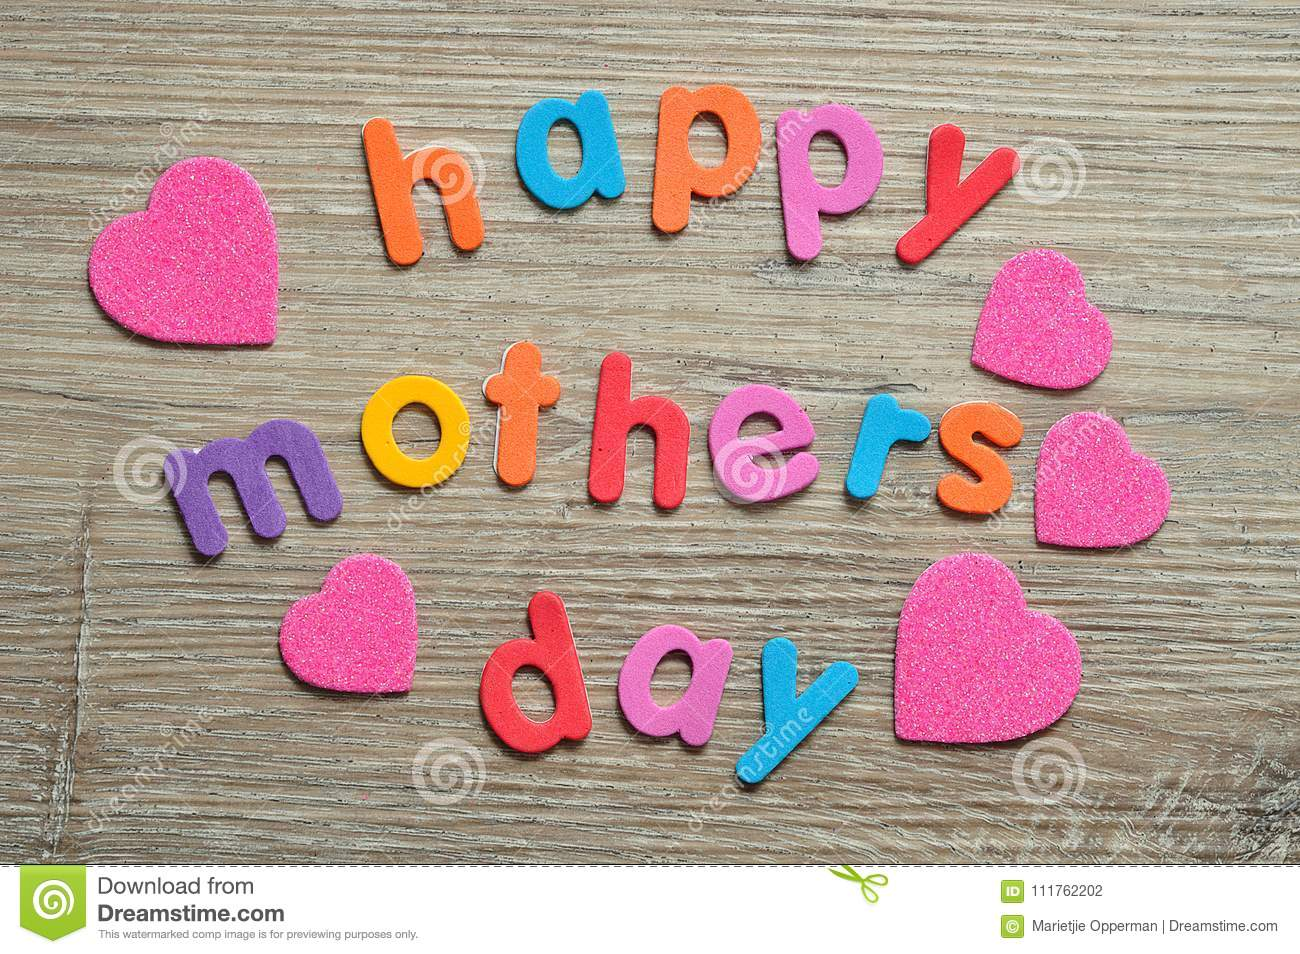 Happy mothers day in colorful letters with pink hearts